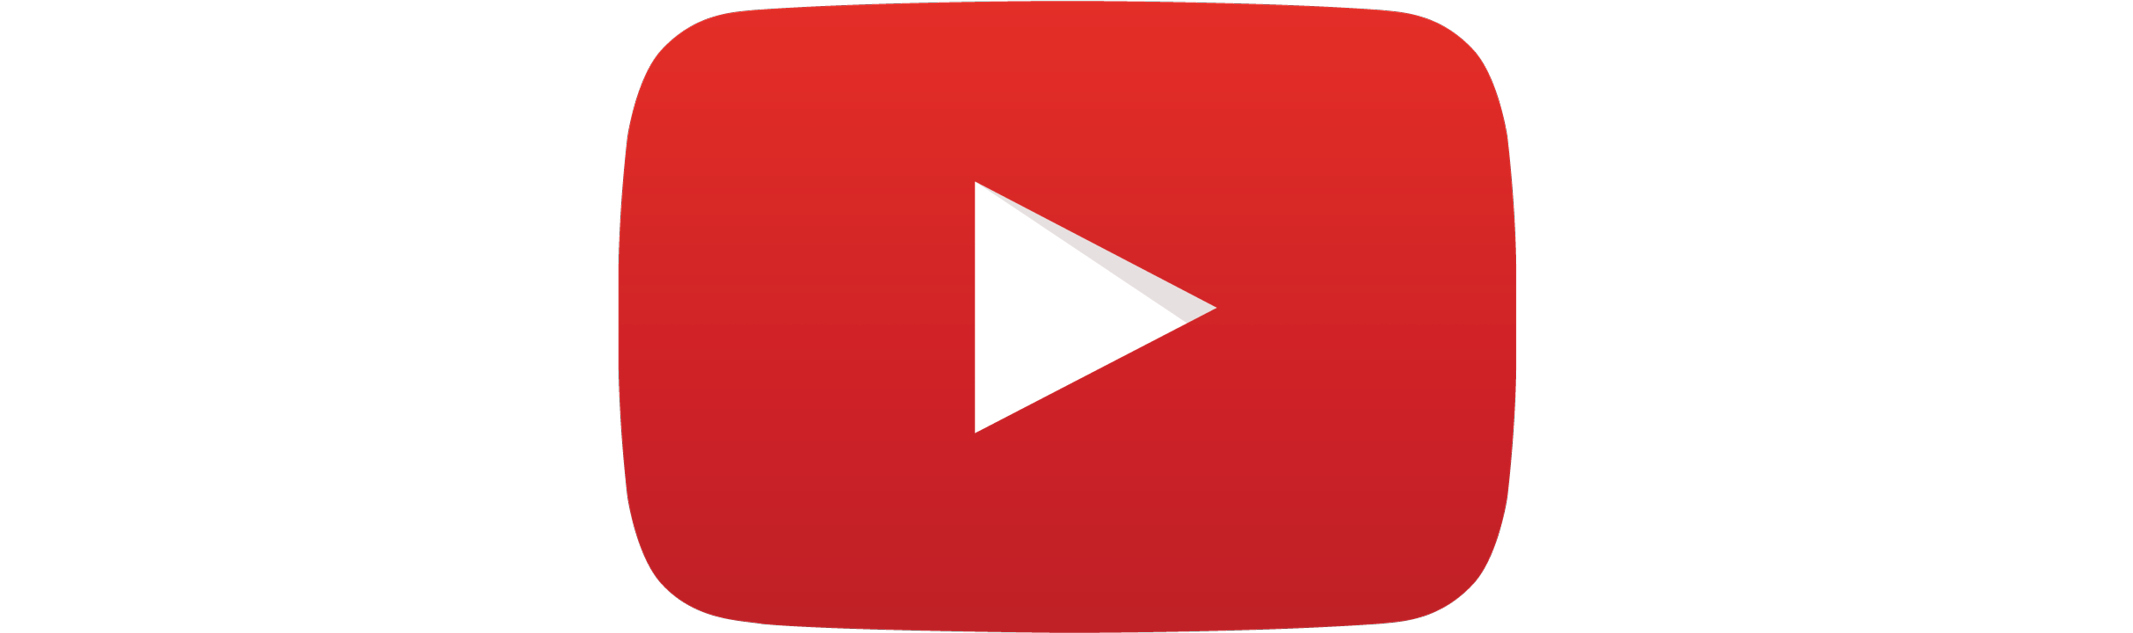 YouTube's New Concept Gives Users More of What They Want